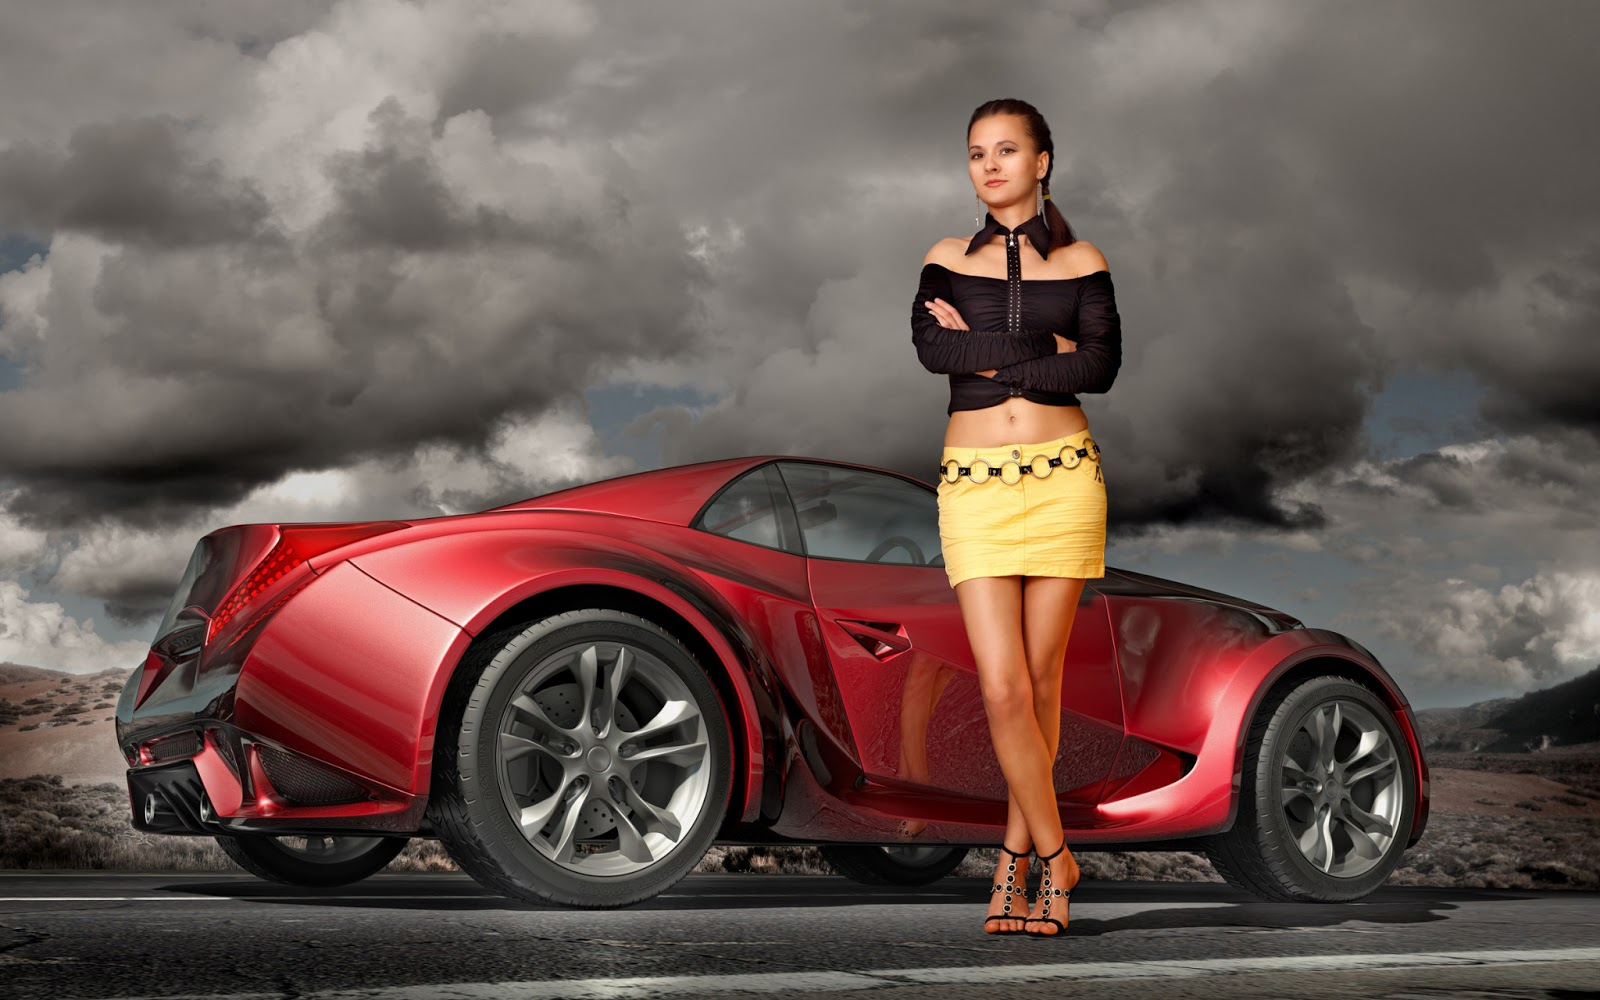 hd wallpapers for desktop awesome cars hd wallpapers